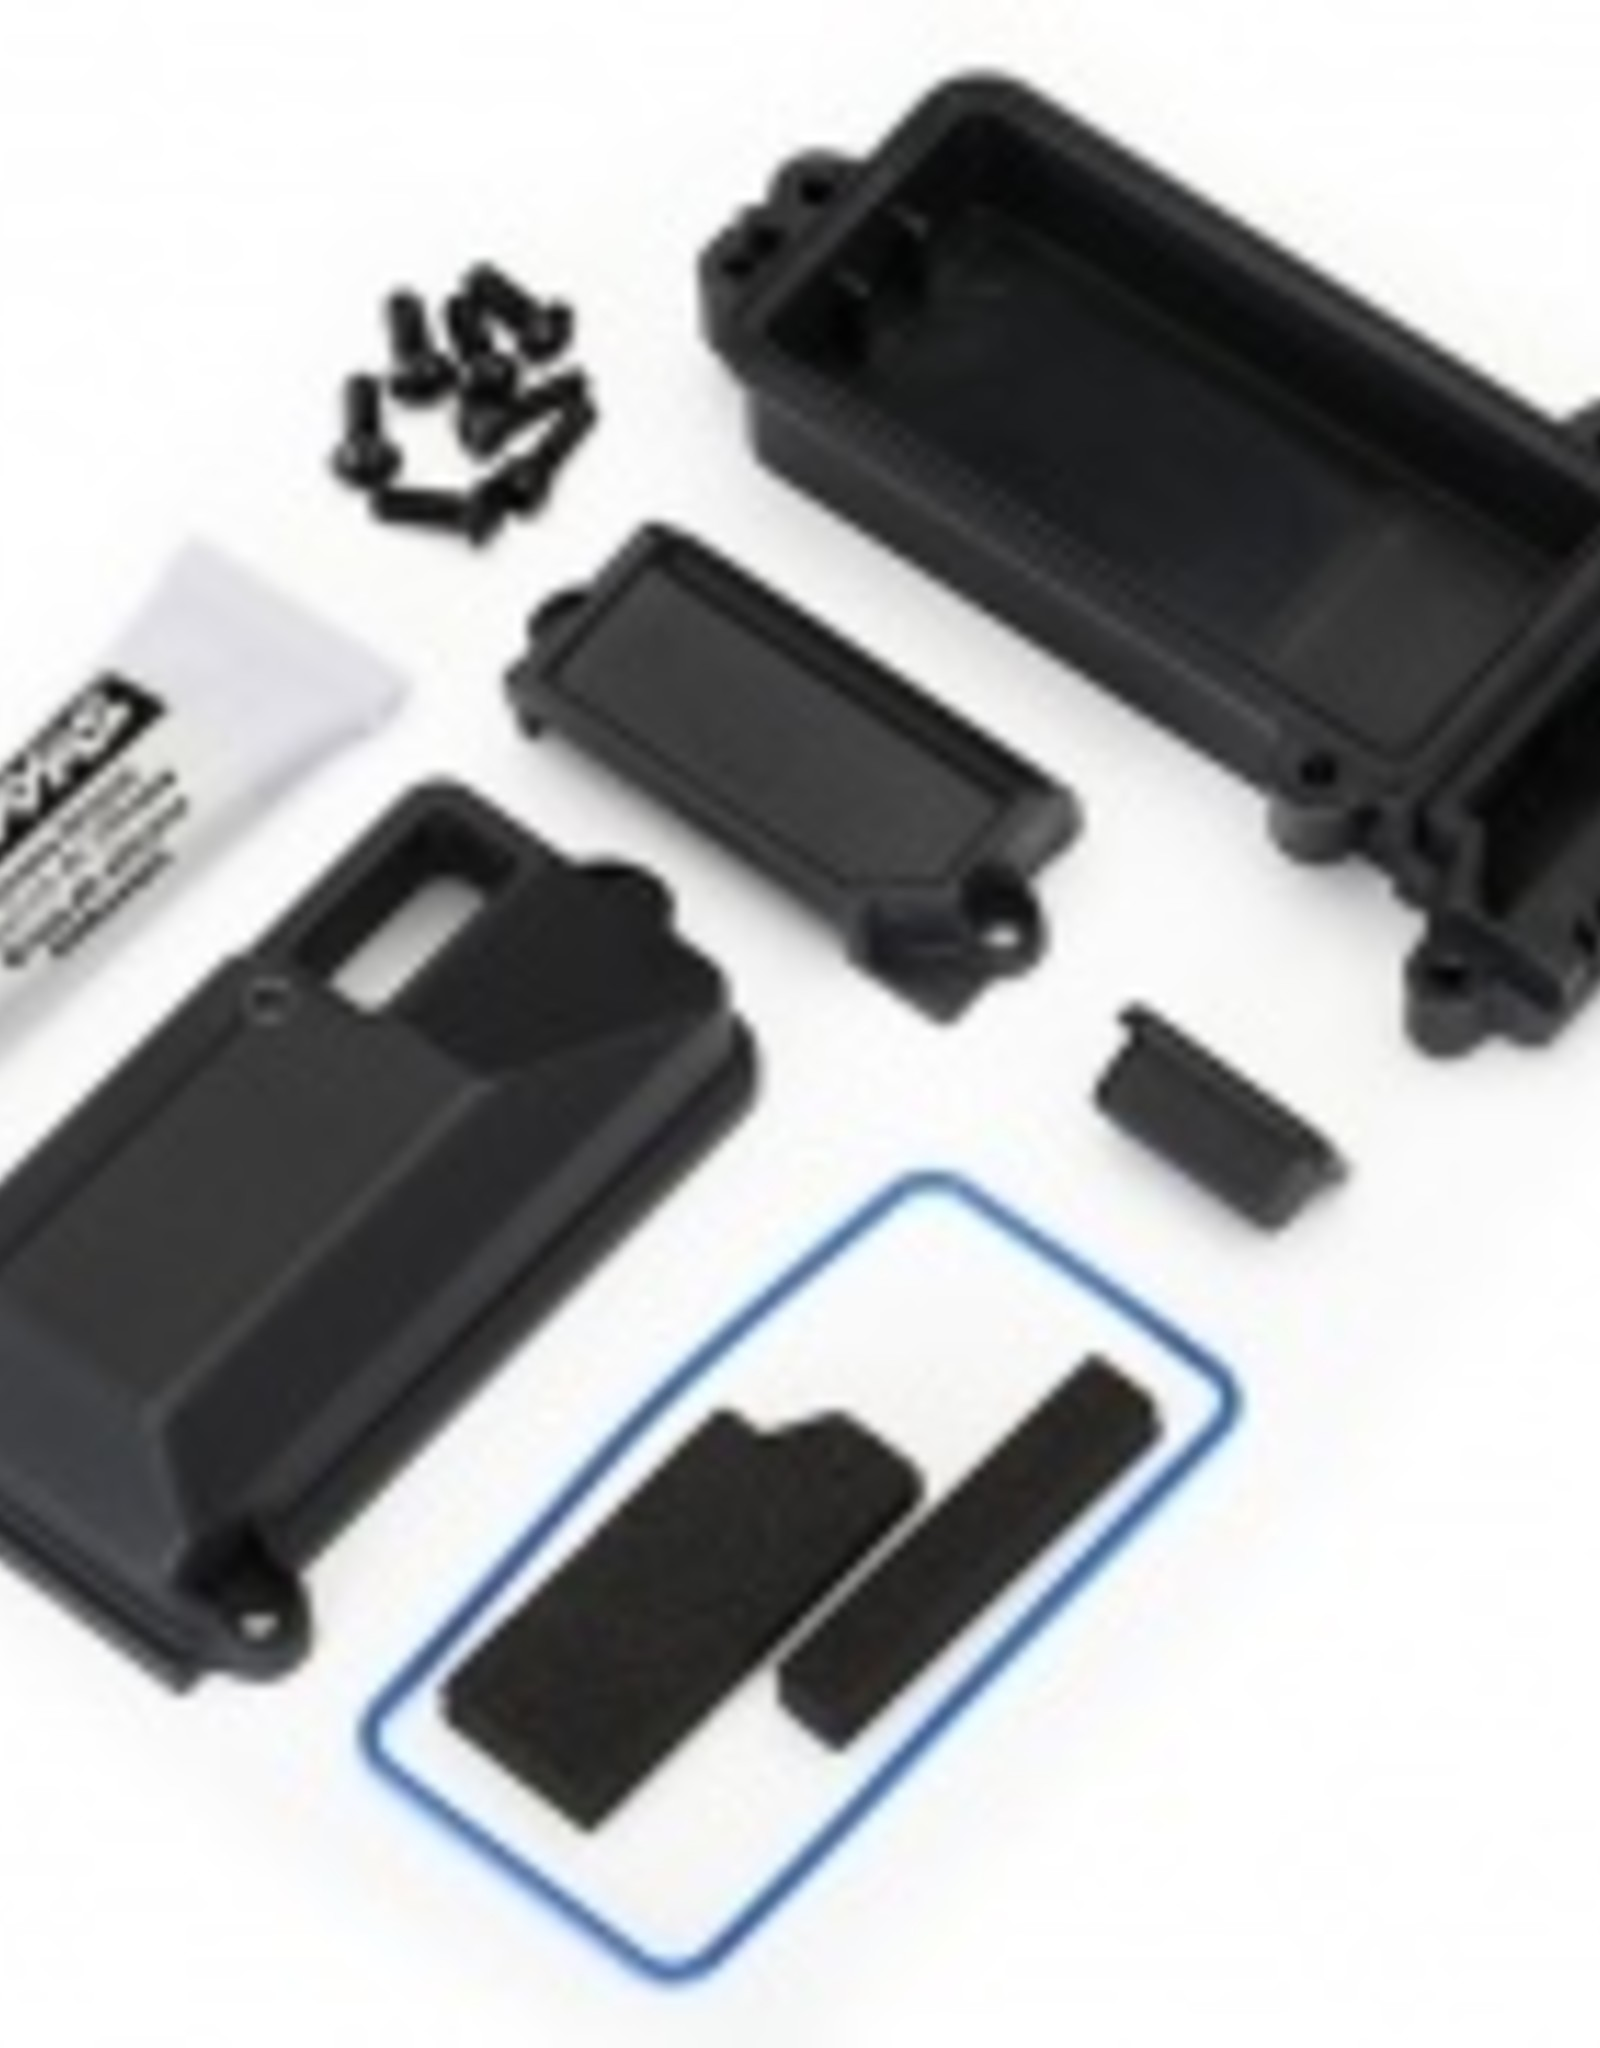 Traxxas Traxxas TRX Box, receiver (sealed)/ wire cover/ foam pads/ silicone grease/ 3x8 BCS (5)/ 2.5x8 CS (2)